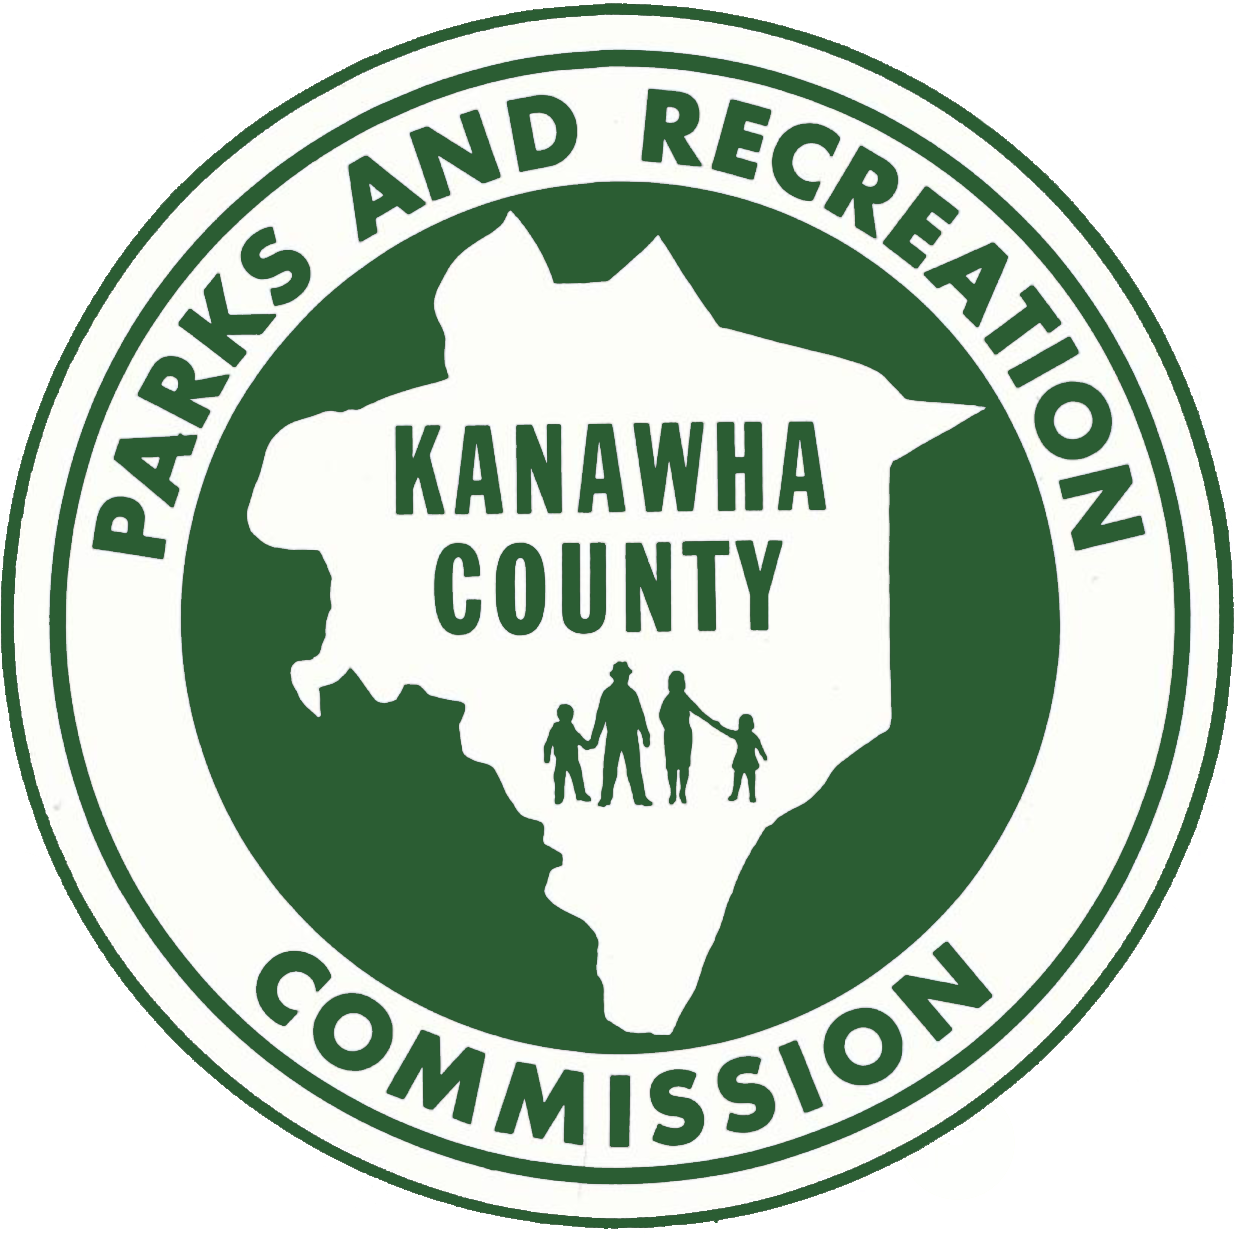 kanawha county black singles Kanawha county (/ k ə ˈ n ɔː / kə-naw or / k ə ˈ n ɔː ə / kə-naw-ə) is a county in the us state of west virginia as of the 2010 census , the population was 193,063, [1] making it west virginia's most populous county.